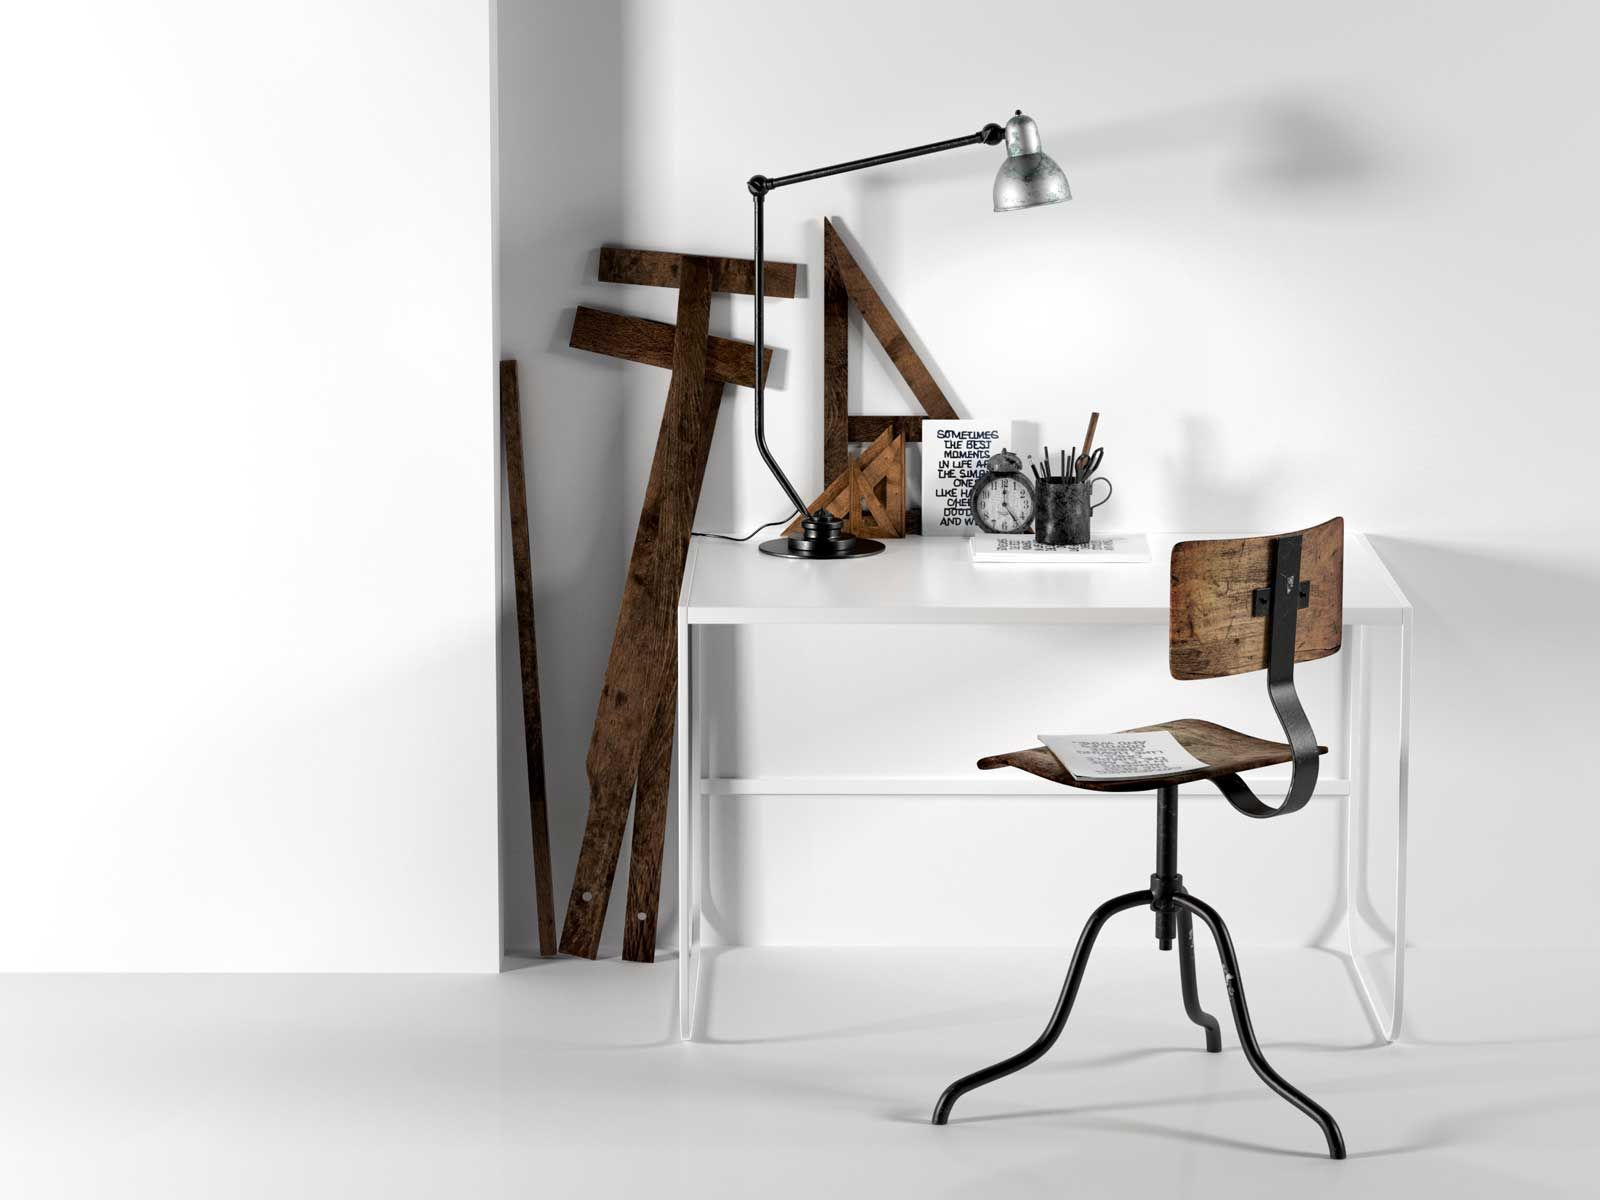 Therese Sennerholt Home : Therese sennerholt workplace by lotta agaton